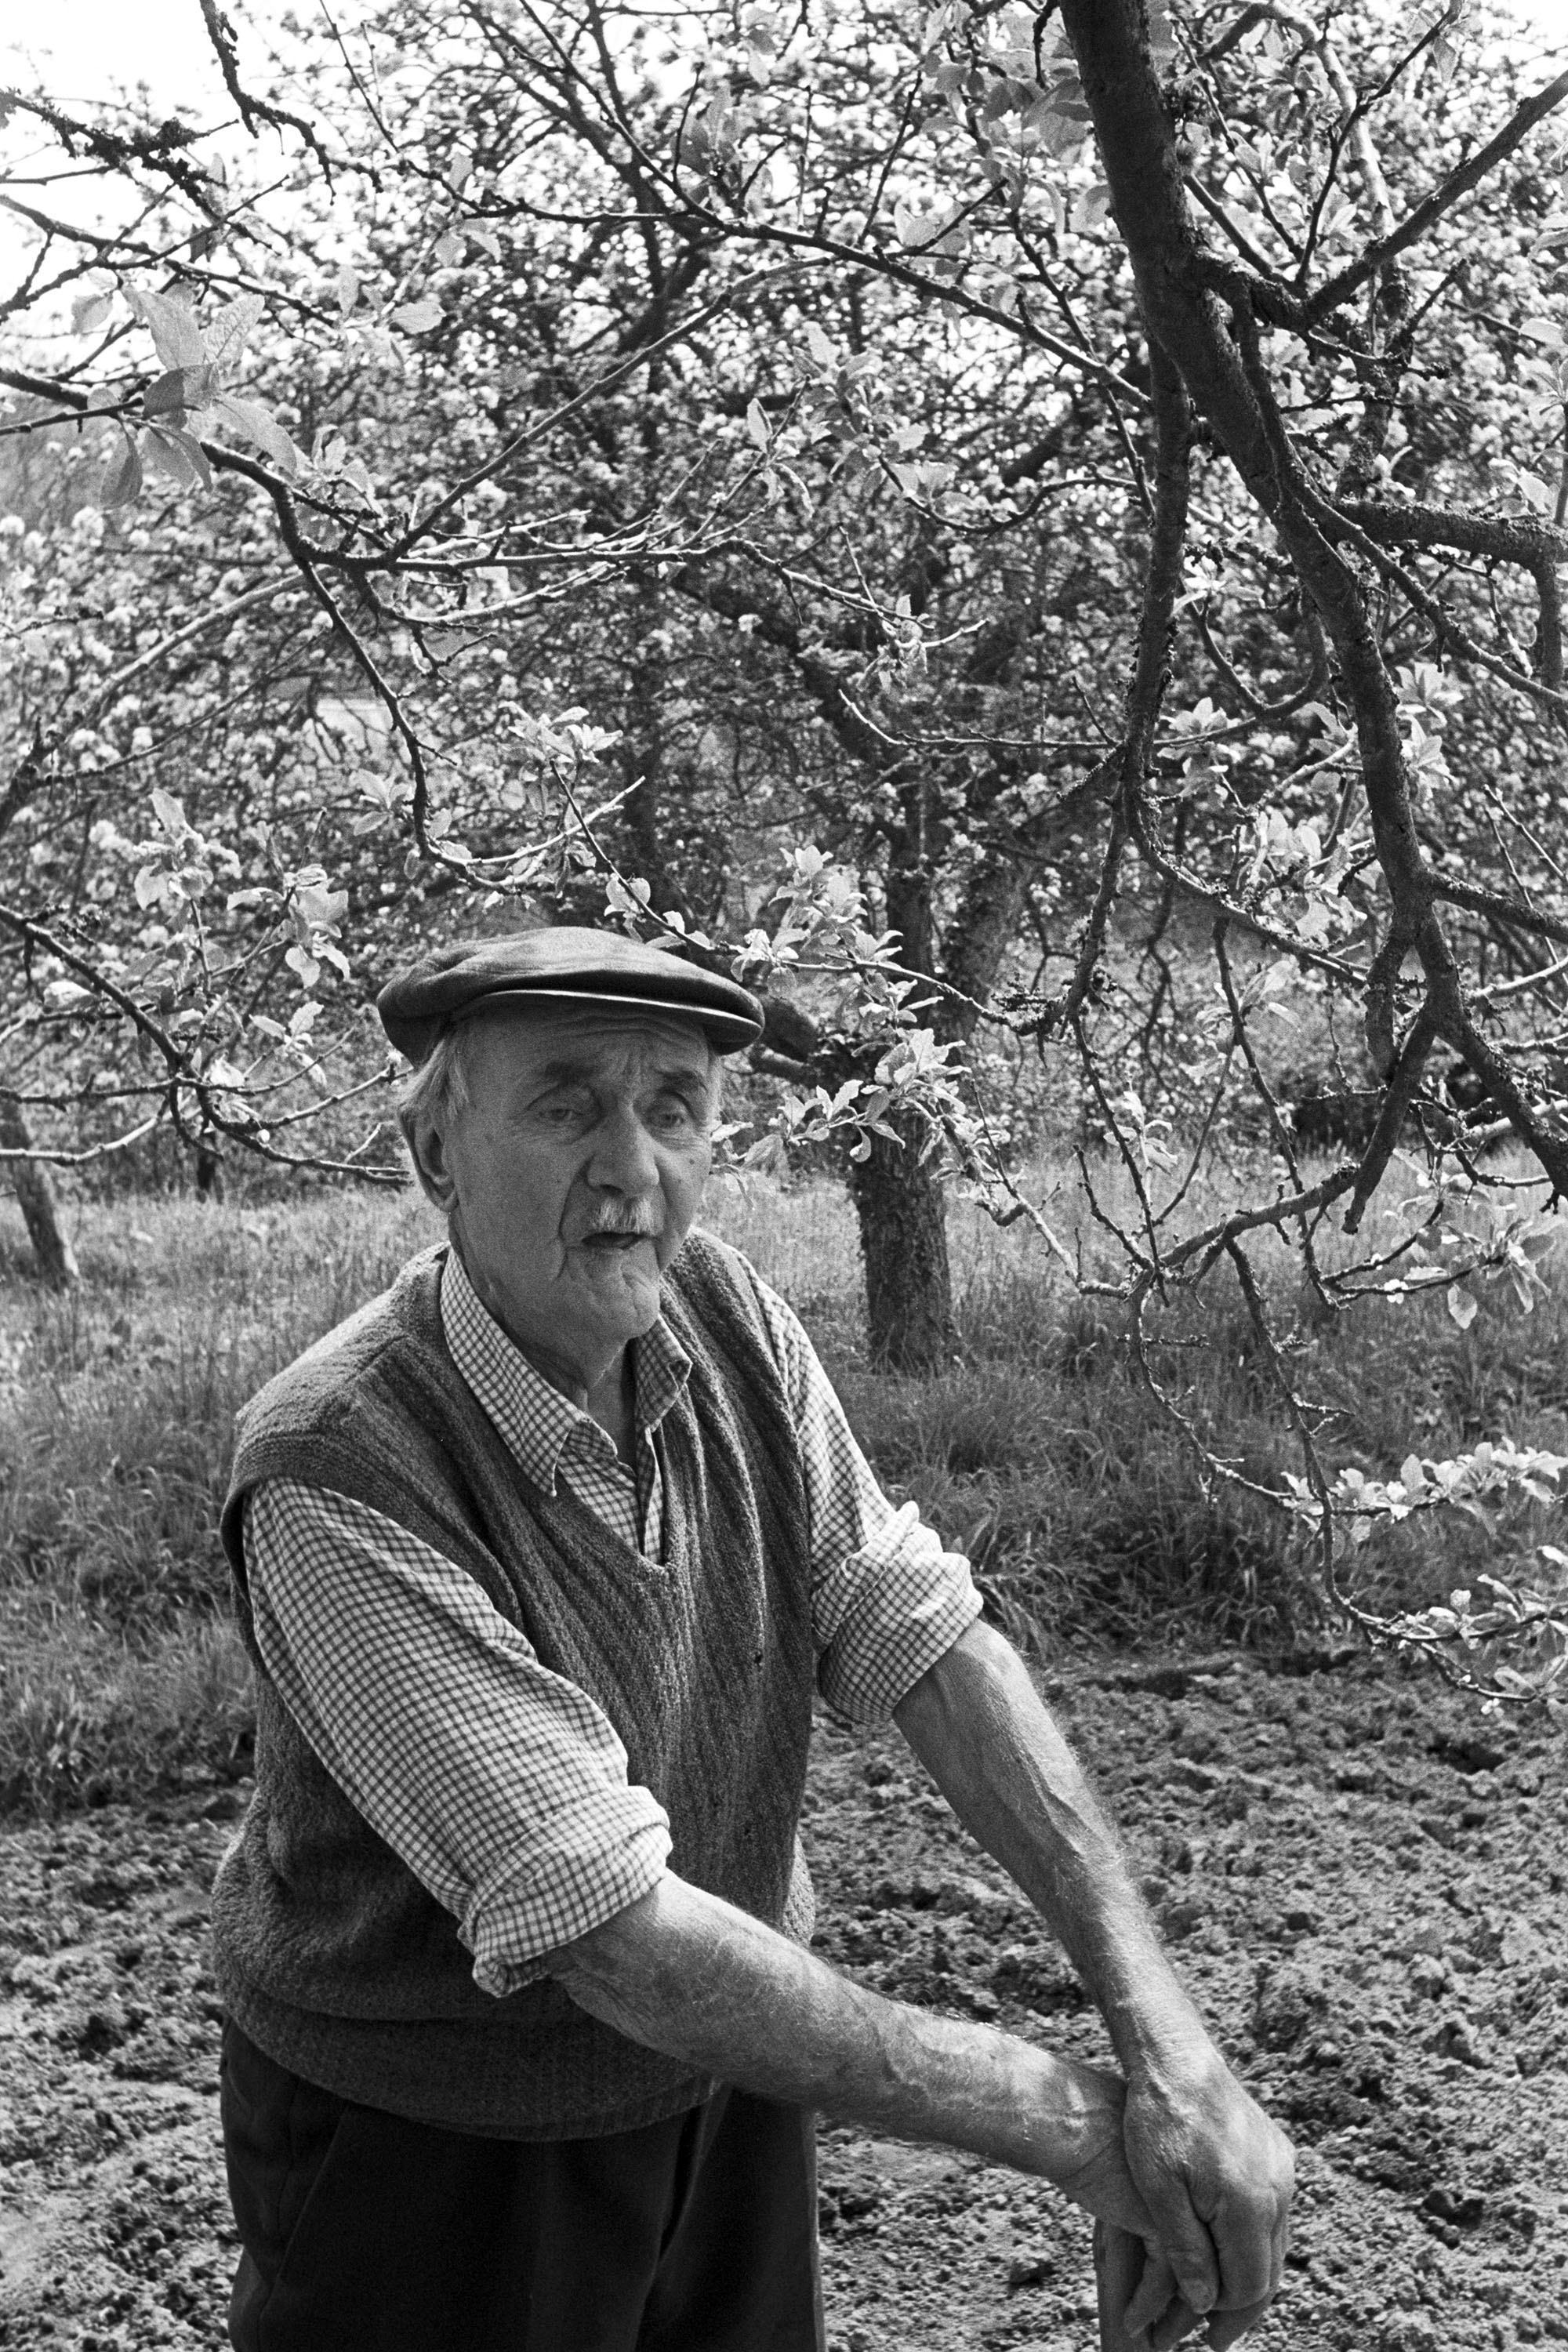 Man gardening beside orchard talking to photographer. <br /> [Mark Germon gardening by an orchard in Lustleigh. He is leaning on a tool. Fruit trees can be seen in the background.]